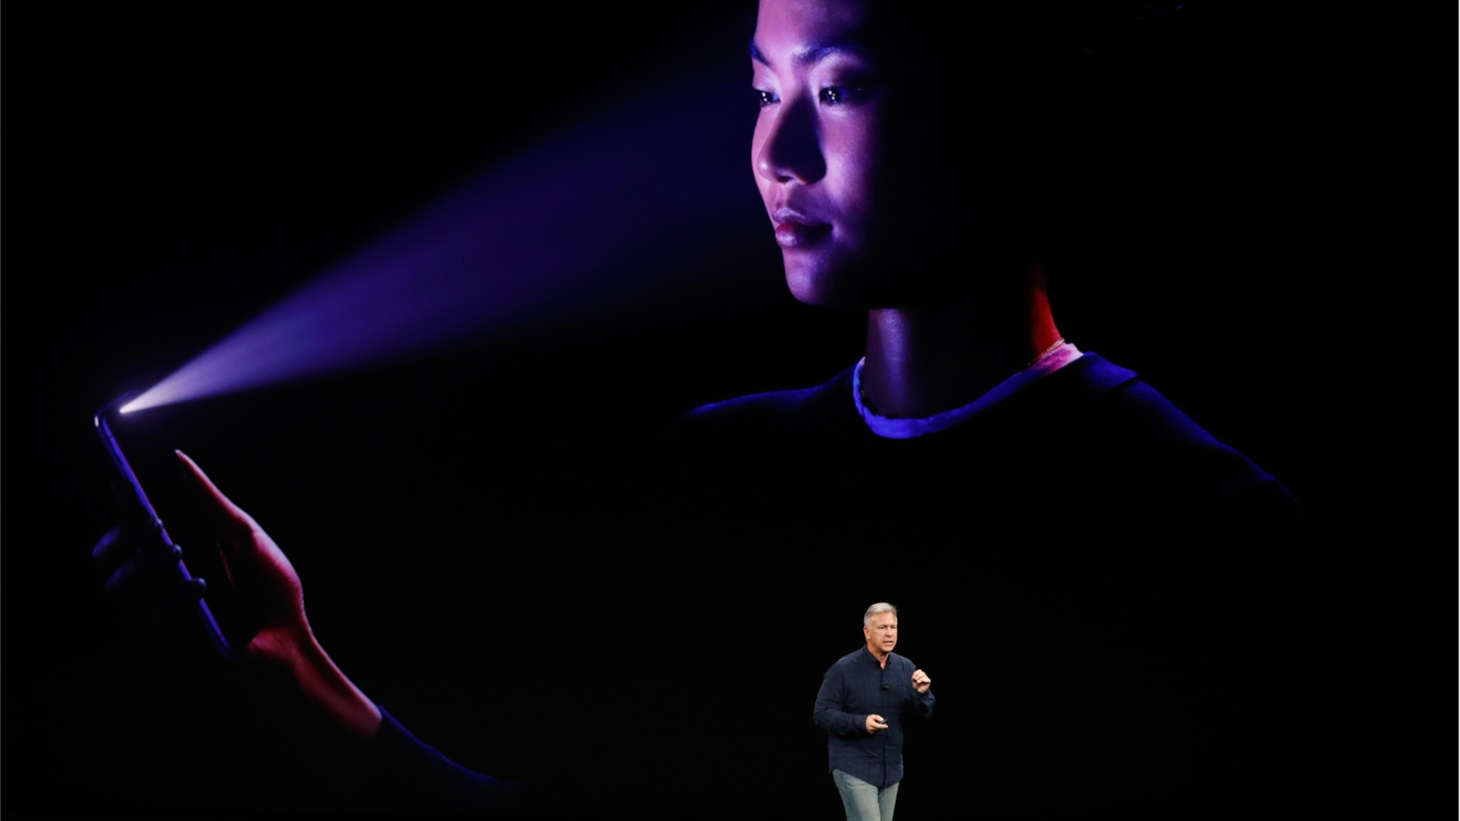 Apple made a big announcement about new products, including a phone with facial recognition software. Facial recognition is already being used a lot more widely than you'd think. The FBI has photos of half of all Americans in its database. The Europeans and the Chinese use it all the time.